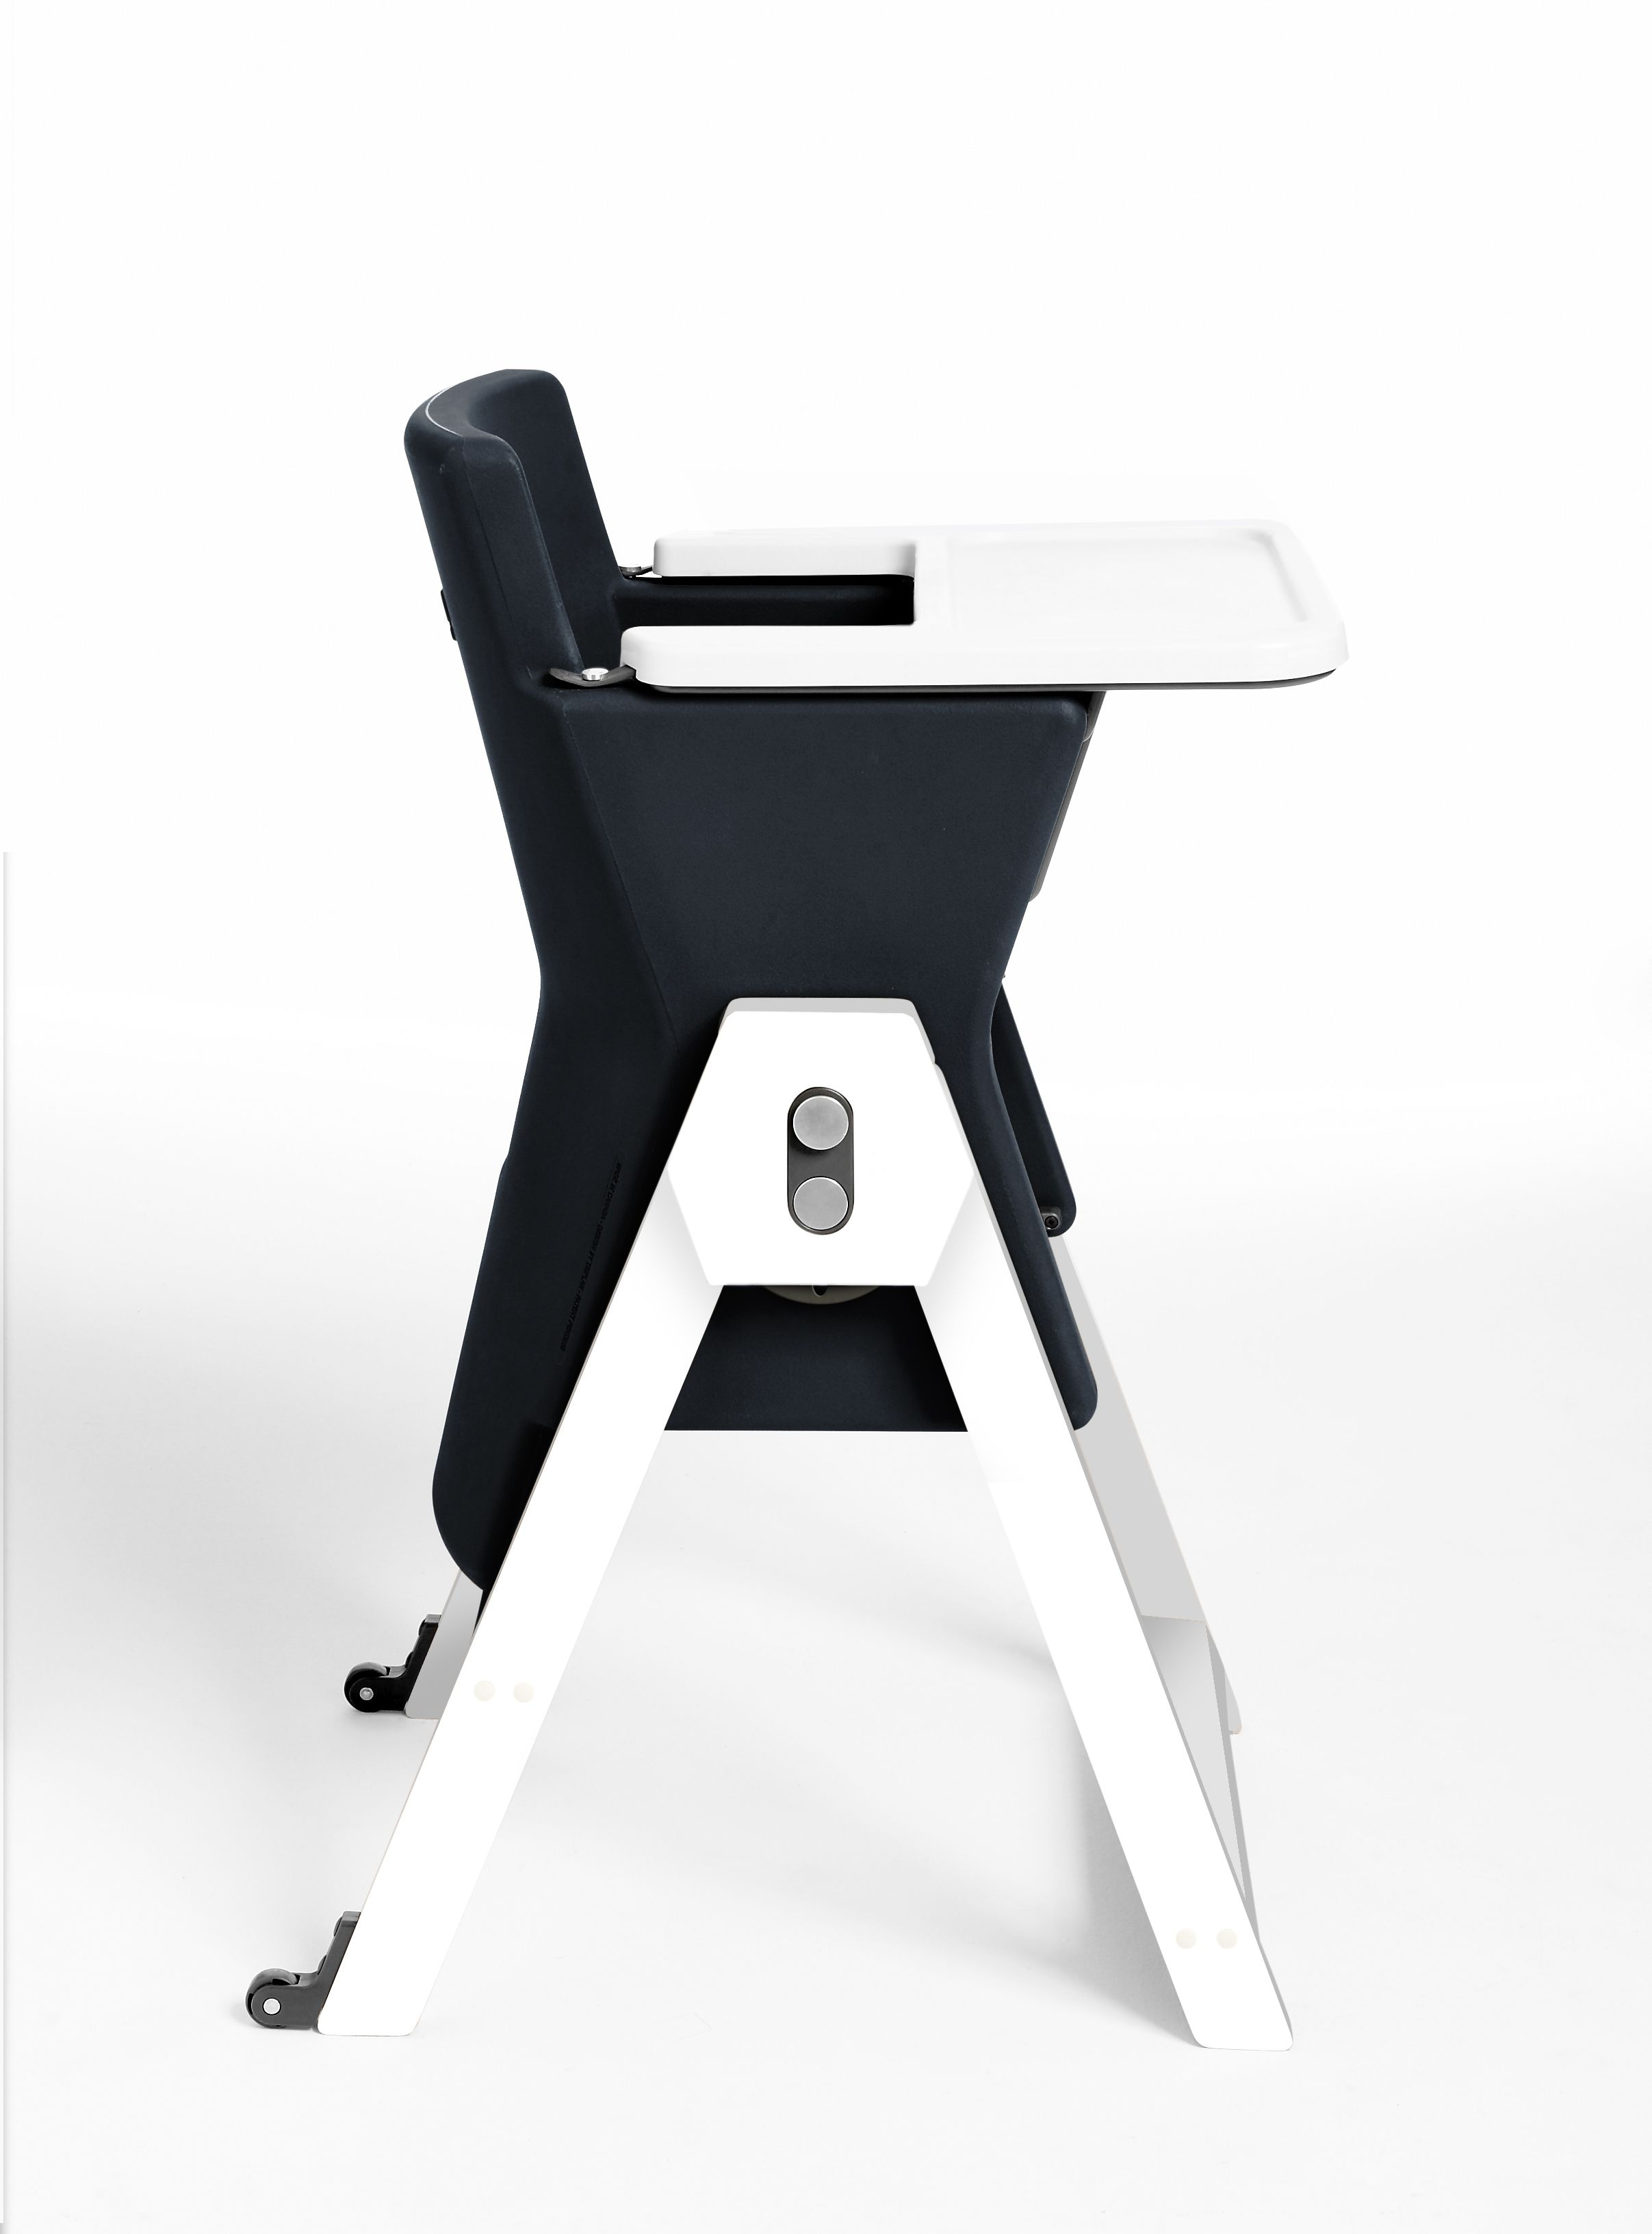 Modern high chair which offers a high seat for baby & simply spin